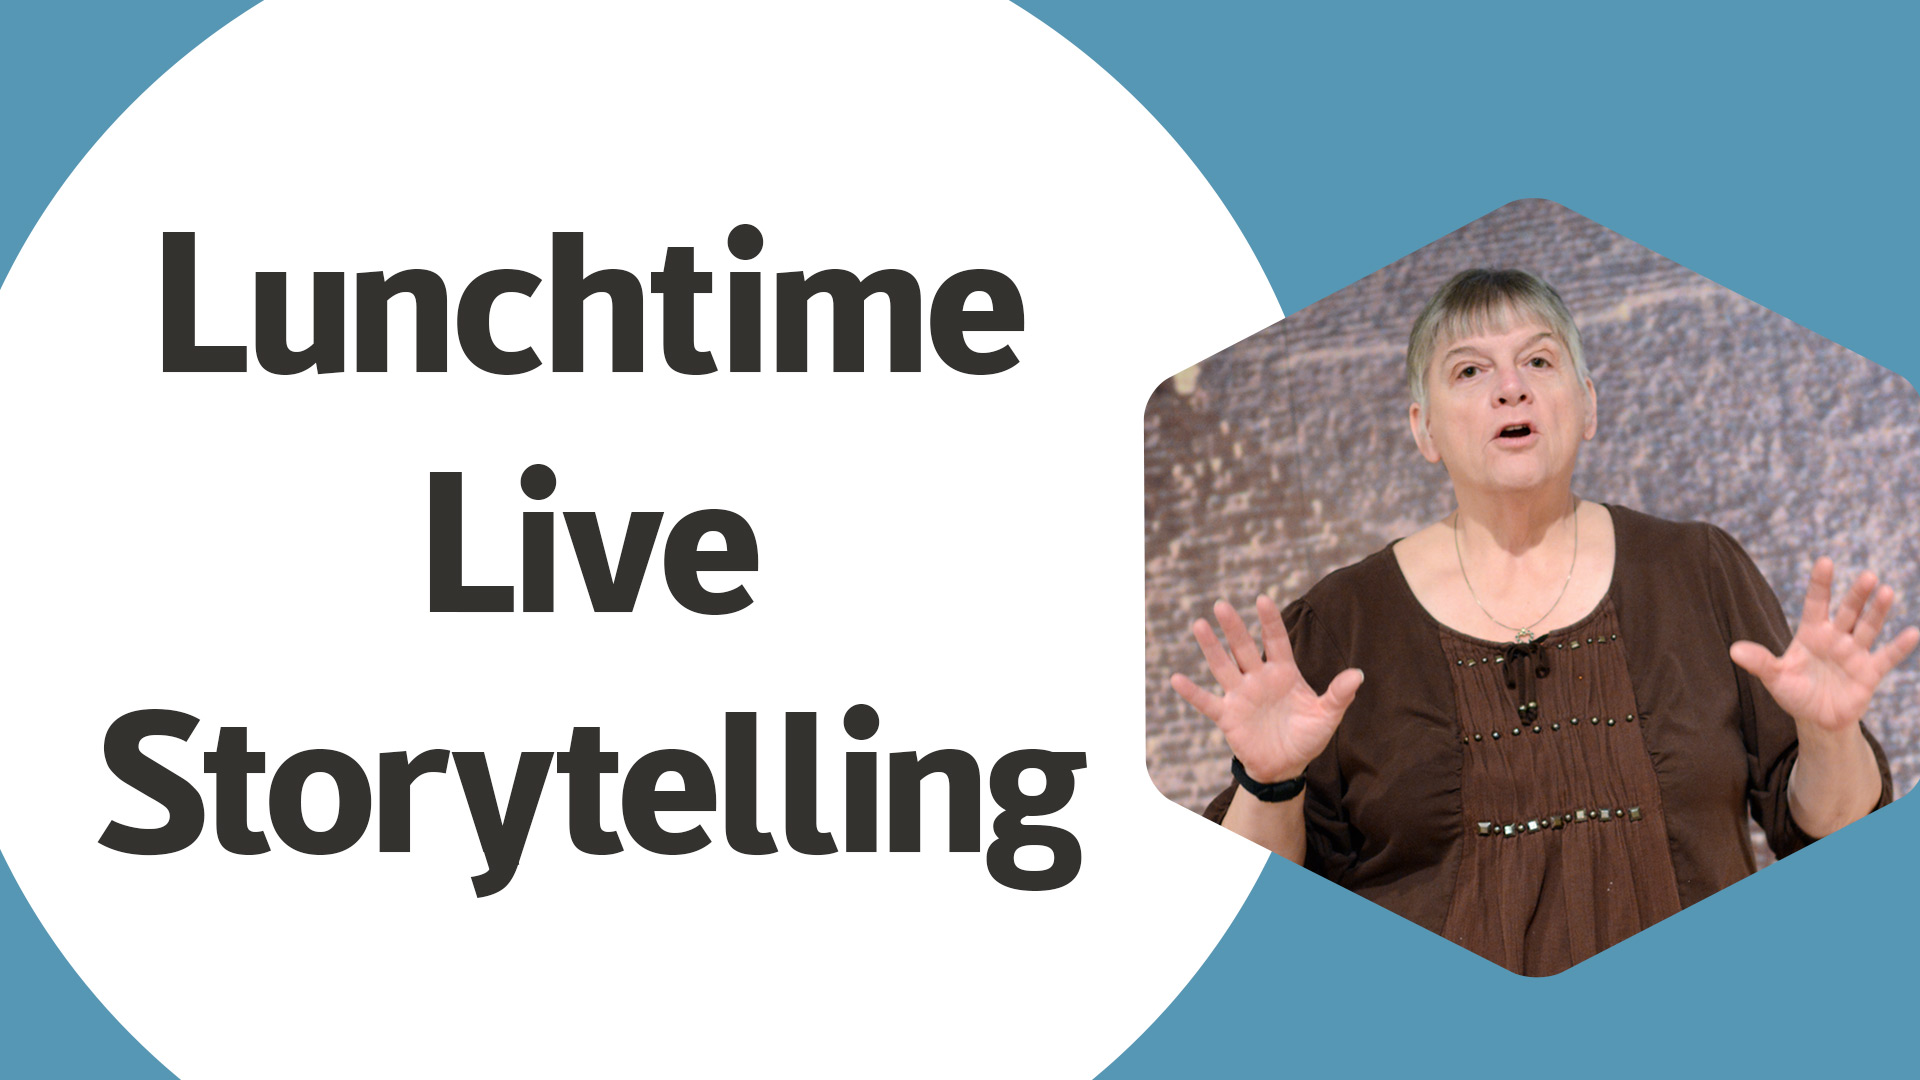 Lunchtime Live Storytelling with woman holding hands up and telling a story to the camera